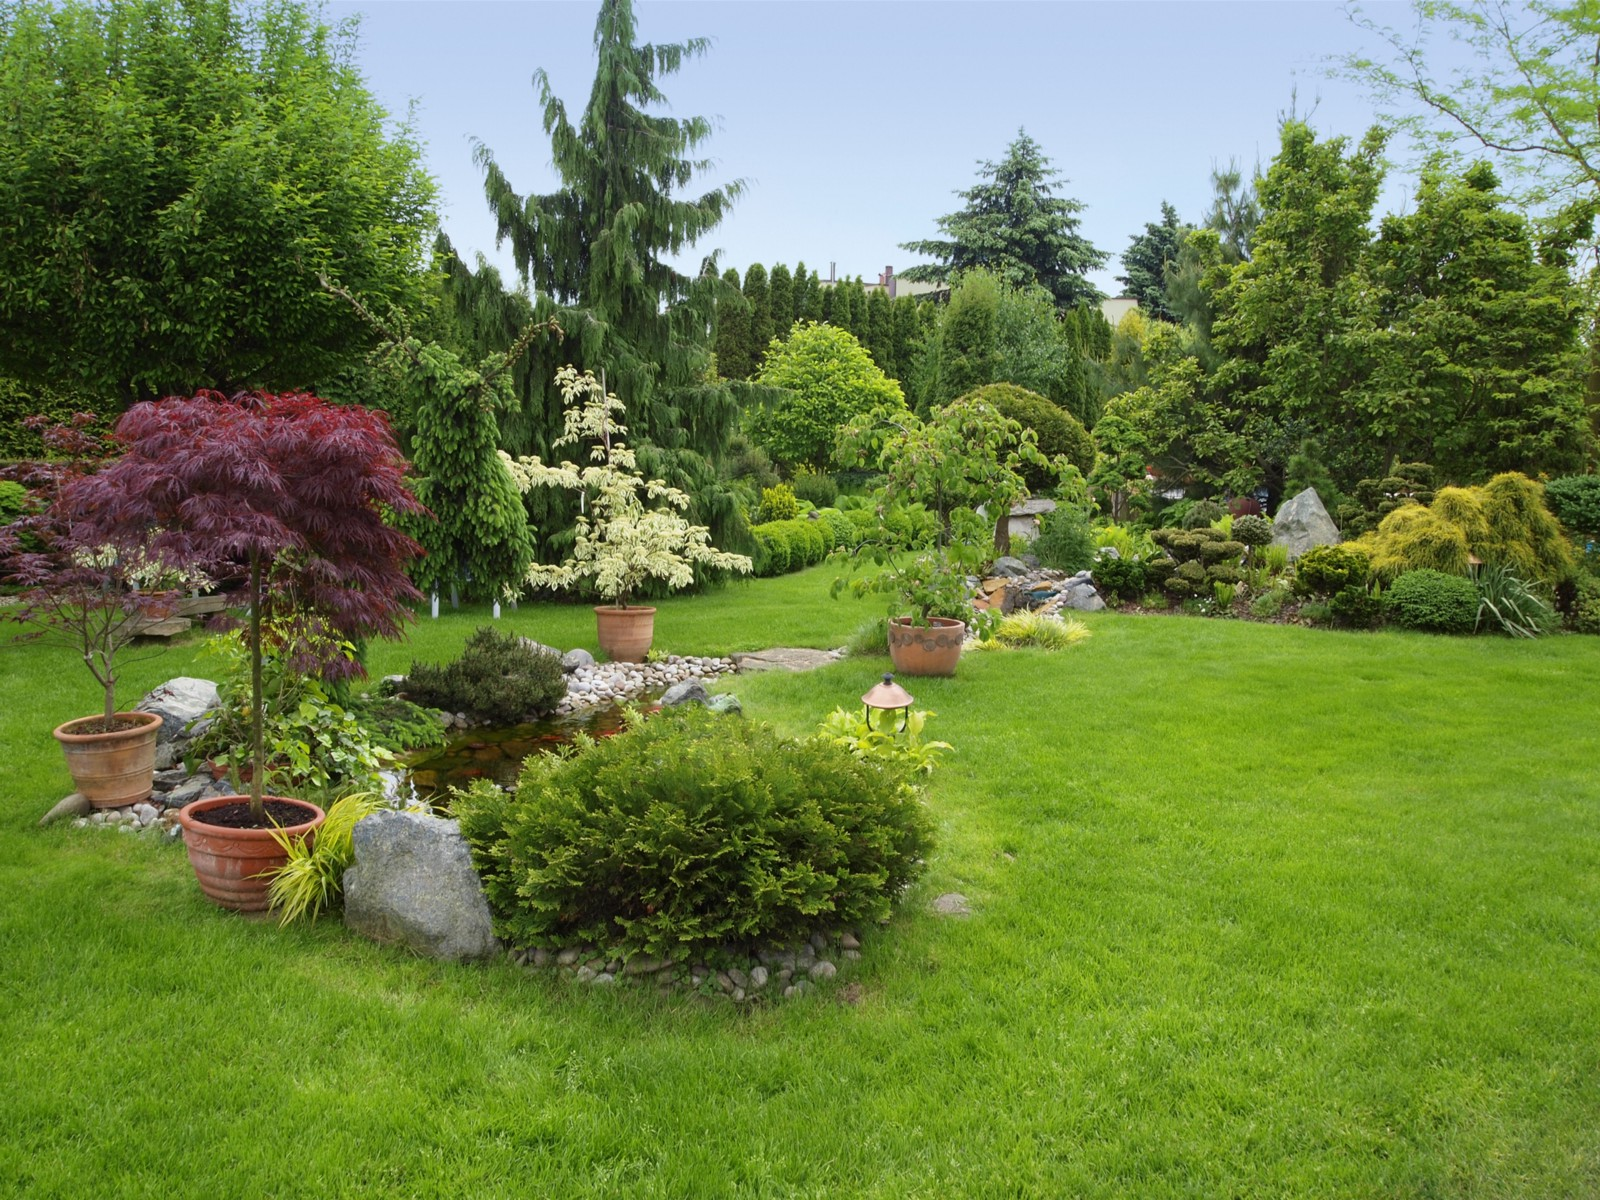 What to take in the garden